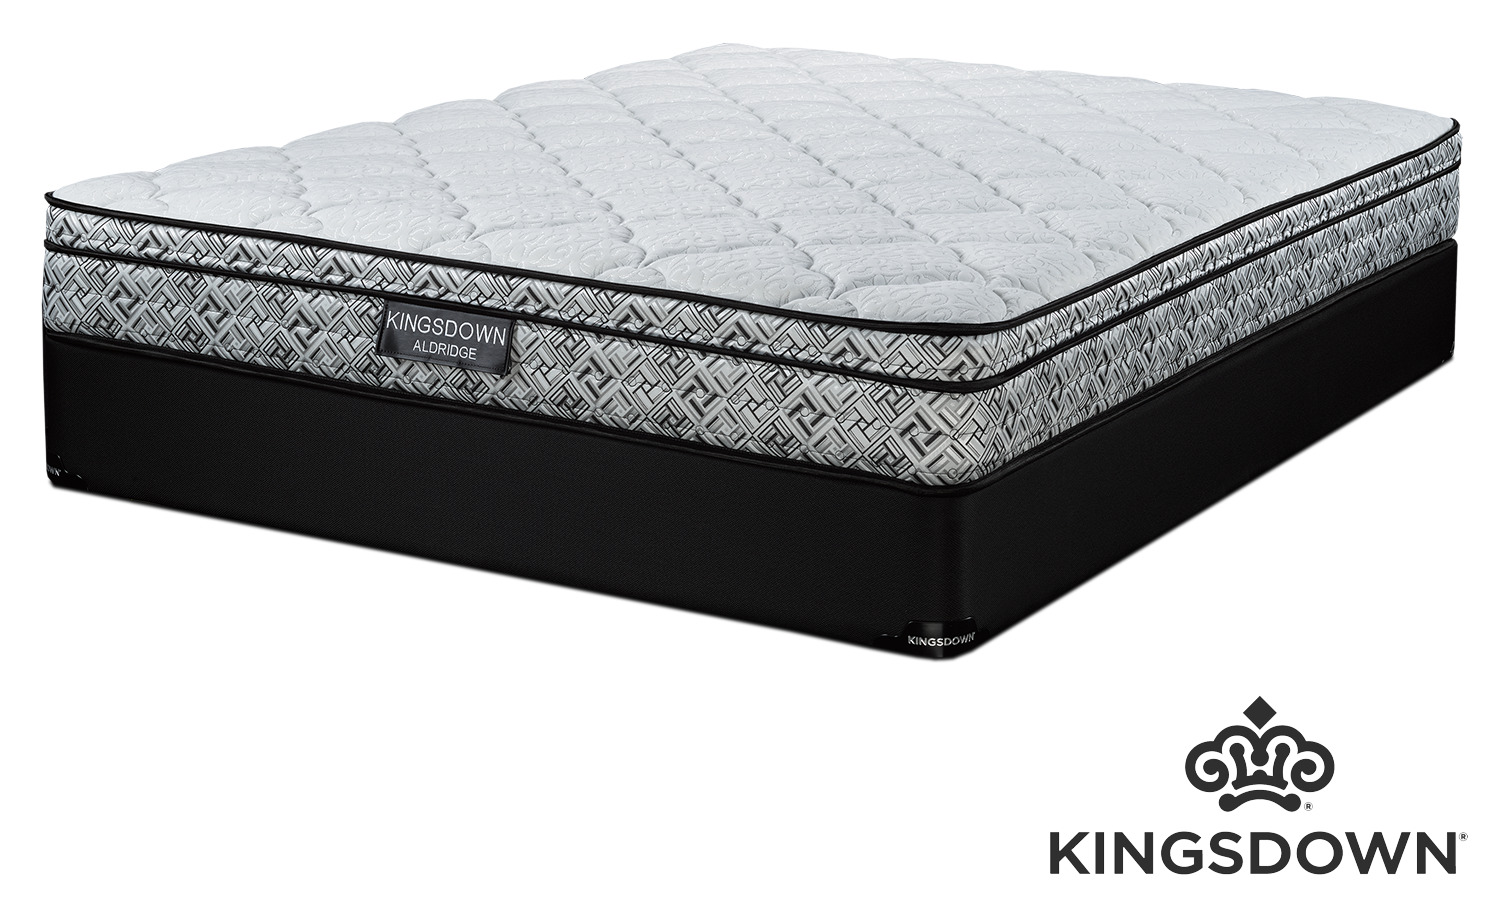 Kingsdown Aldridge Cushion Firm Queen Mattress and Boxspring Set